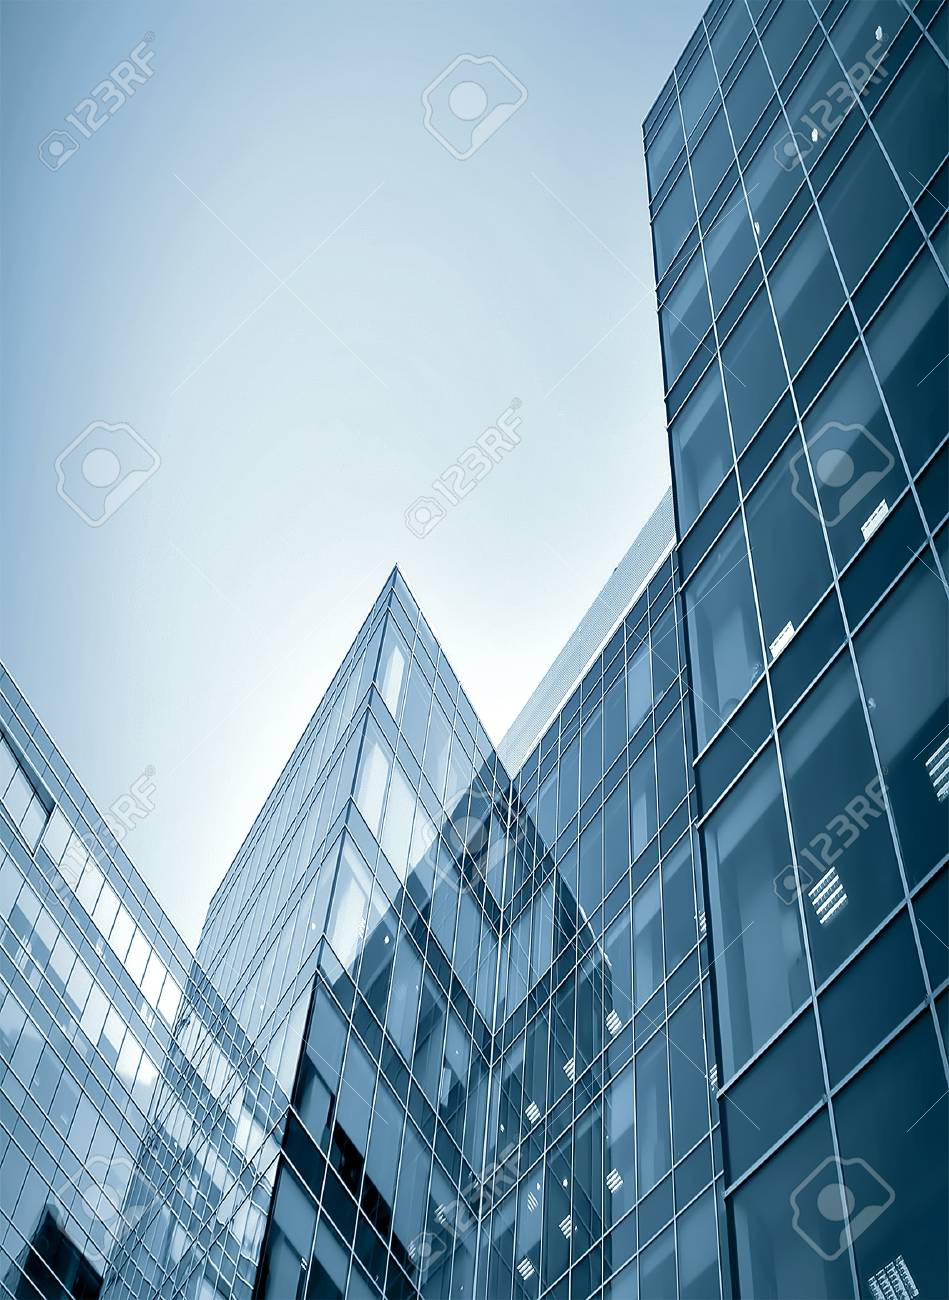 glass skyscrapers at night Stock Photo - 7891616